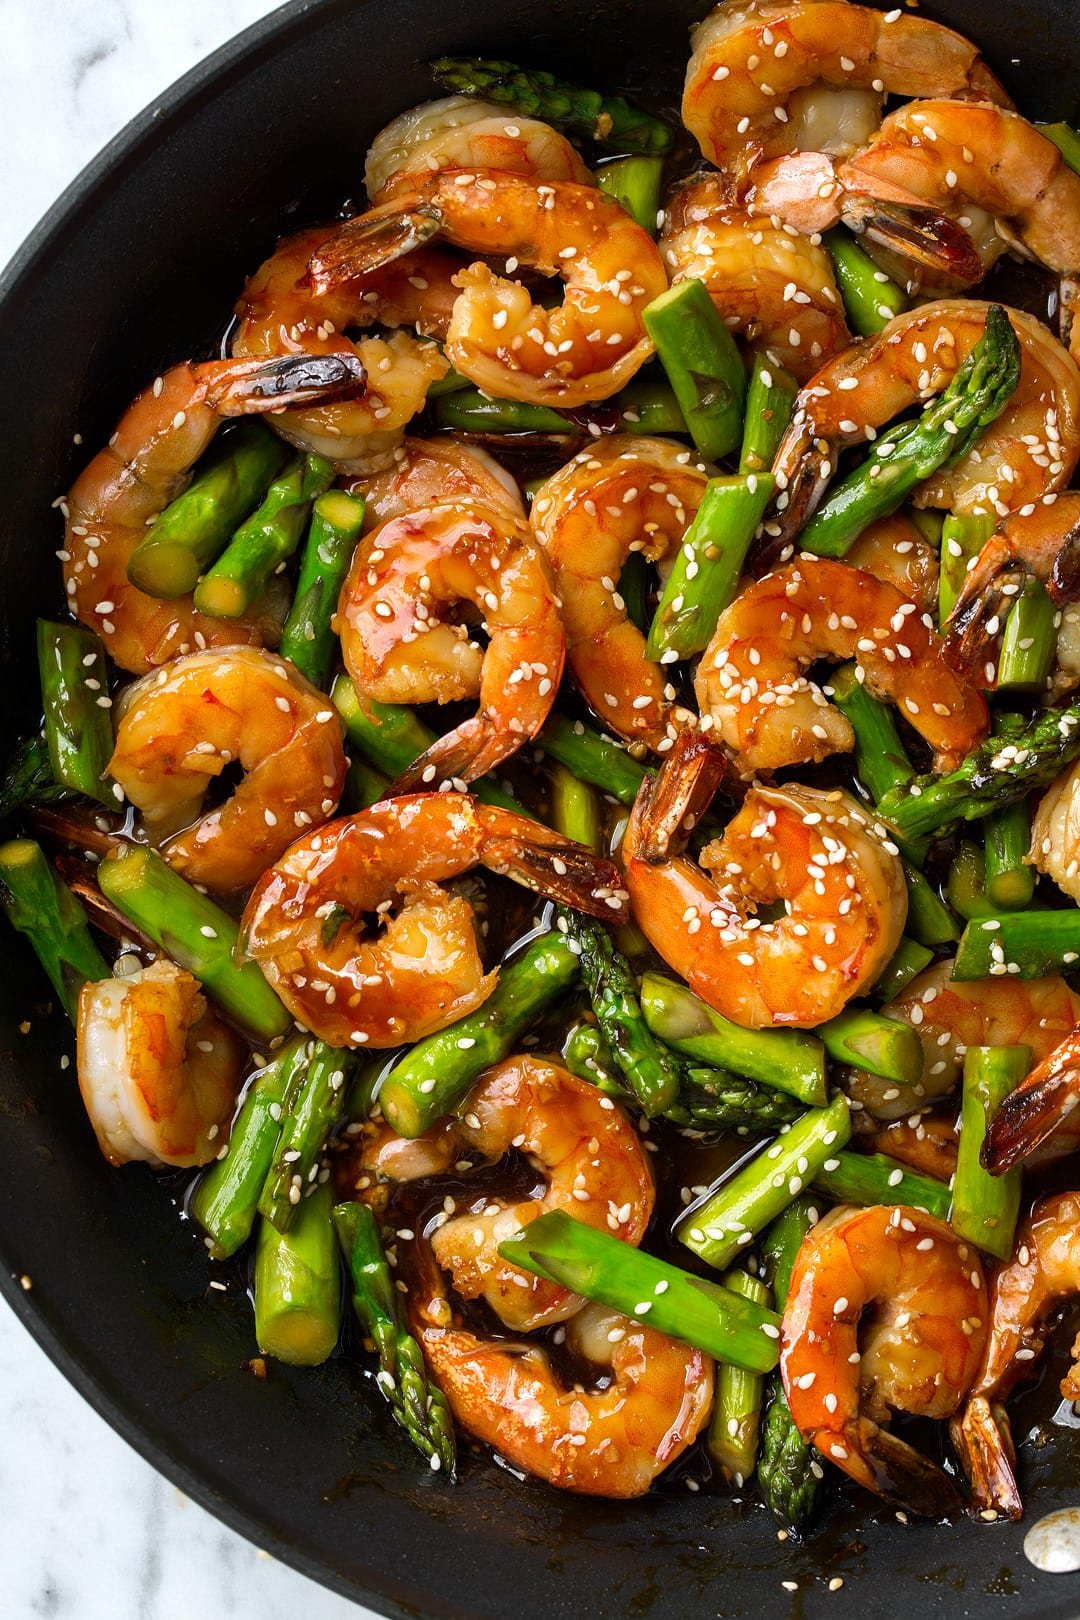 Teriyaki Shrimp and Asparagus in a skillet